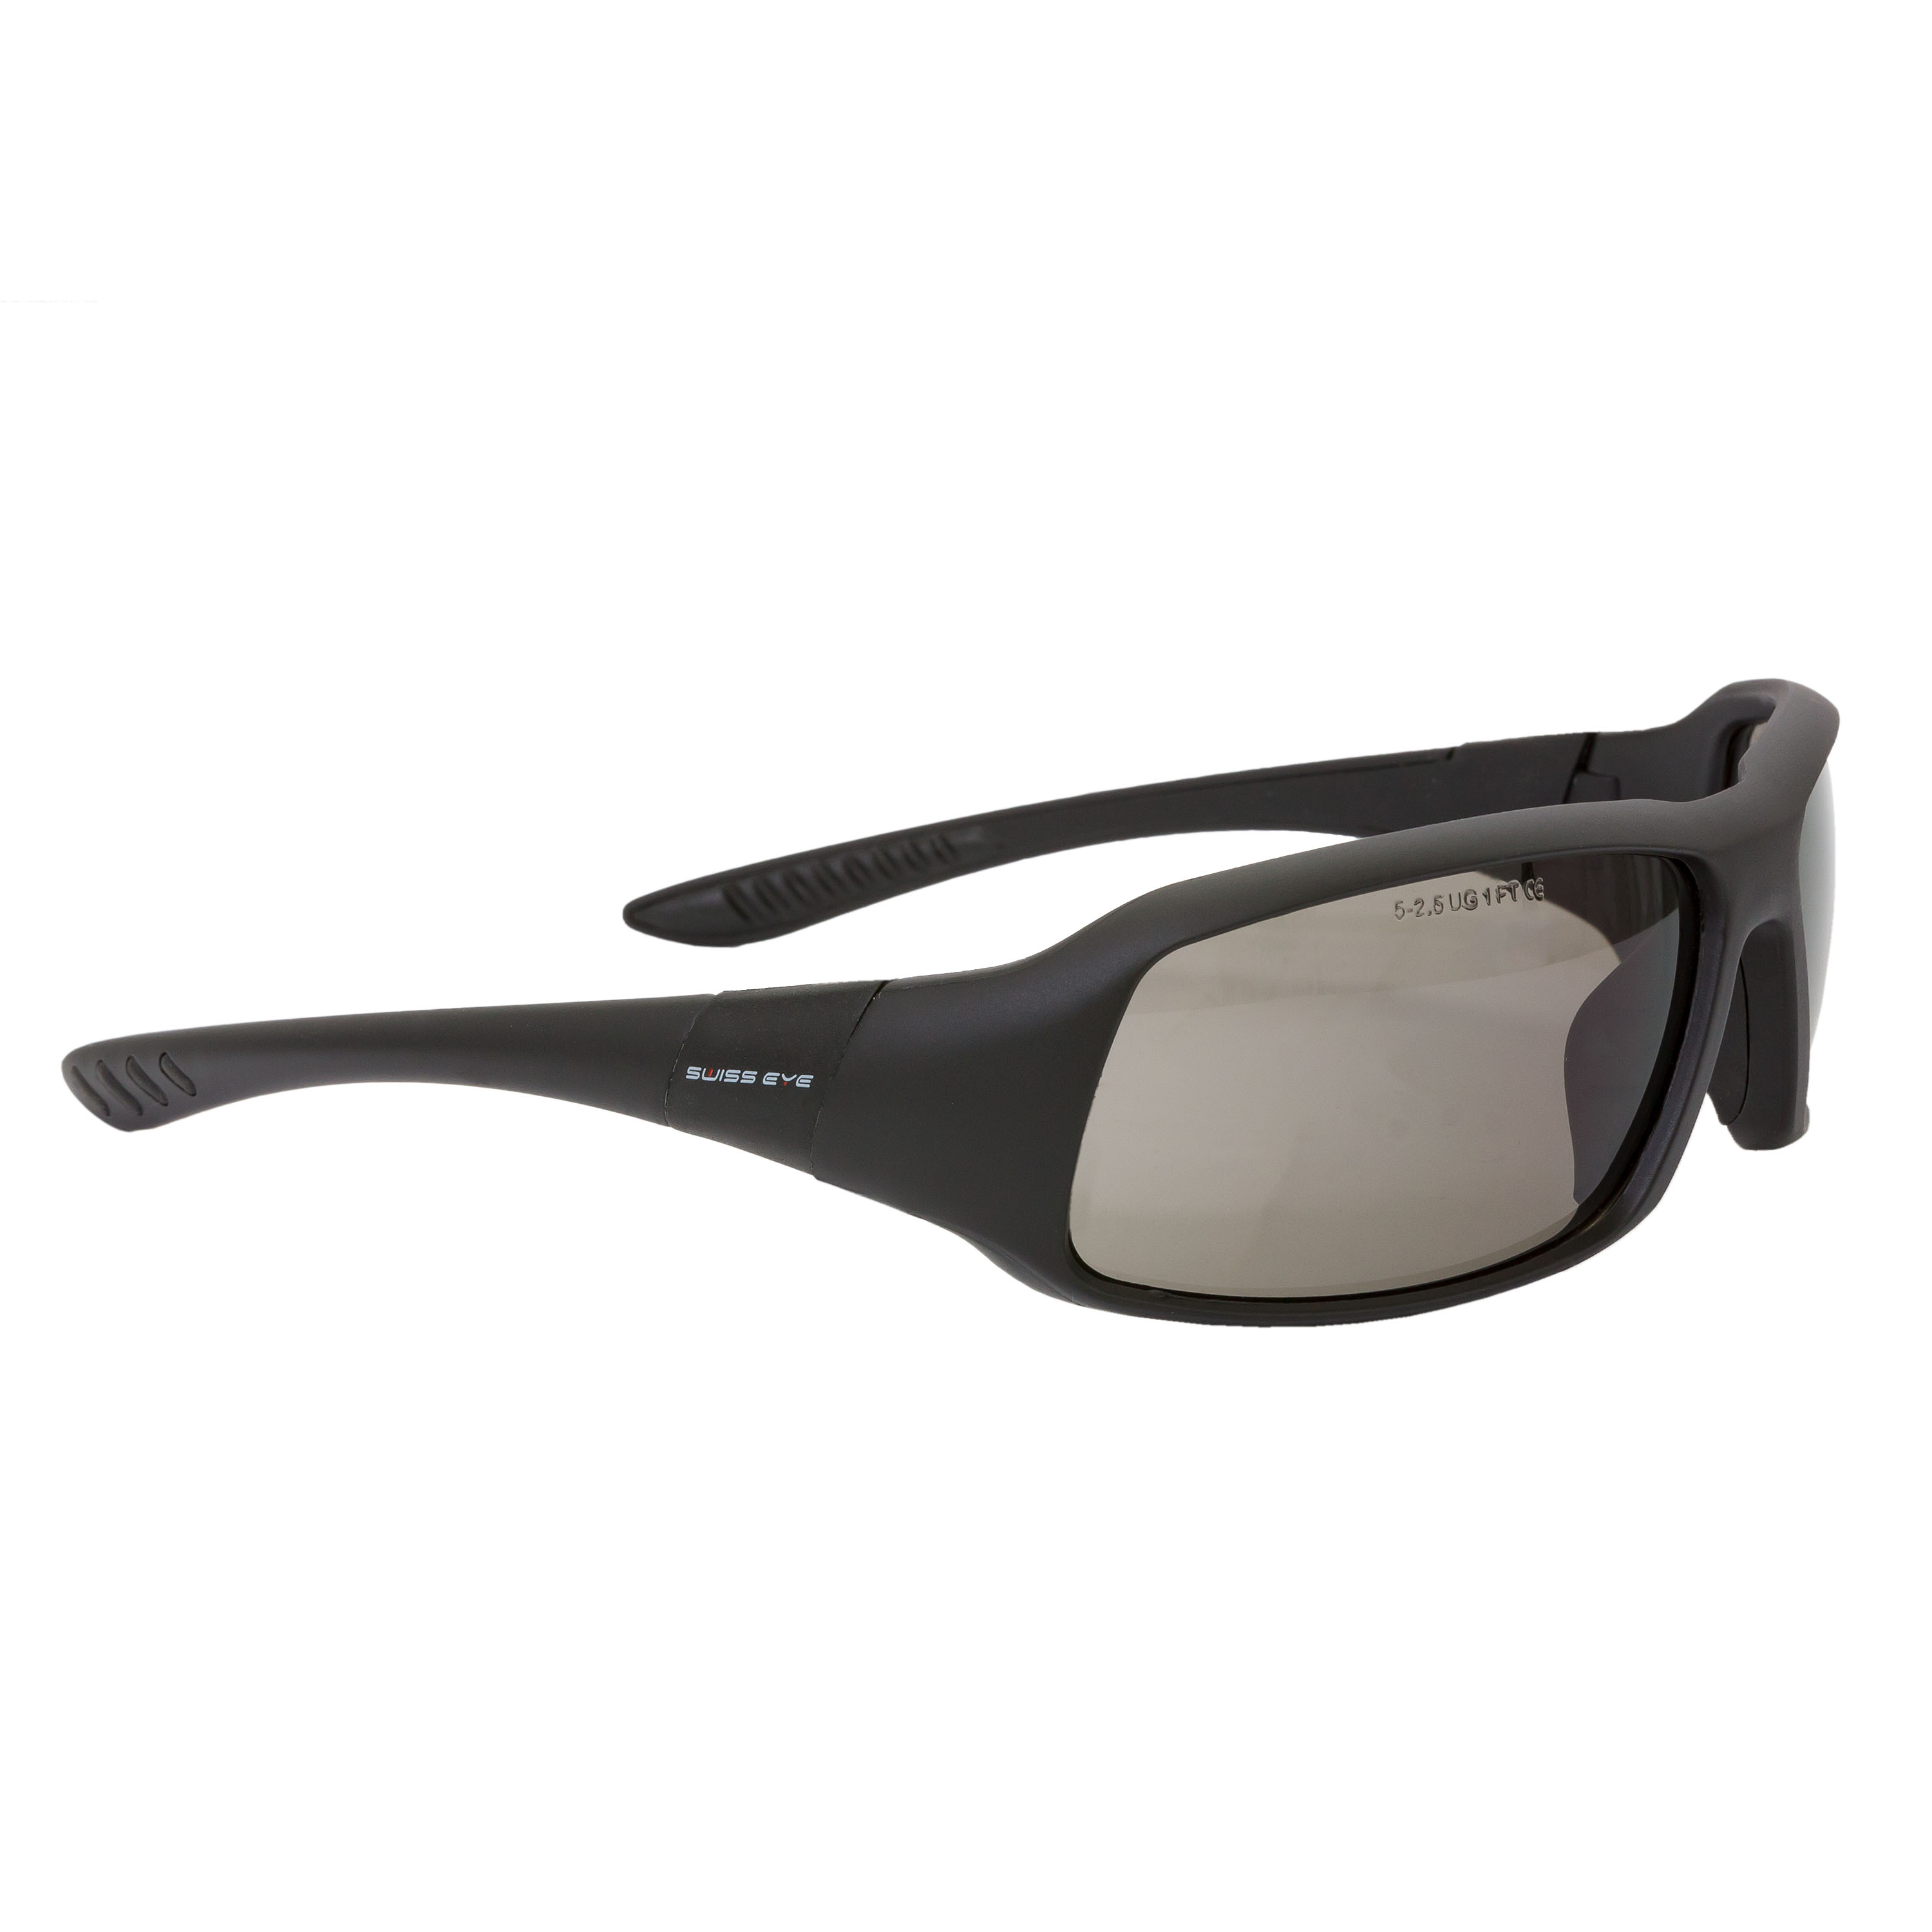 Swiss Eye Glasses Sidewinder black